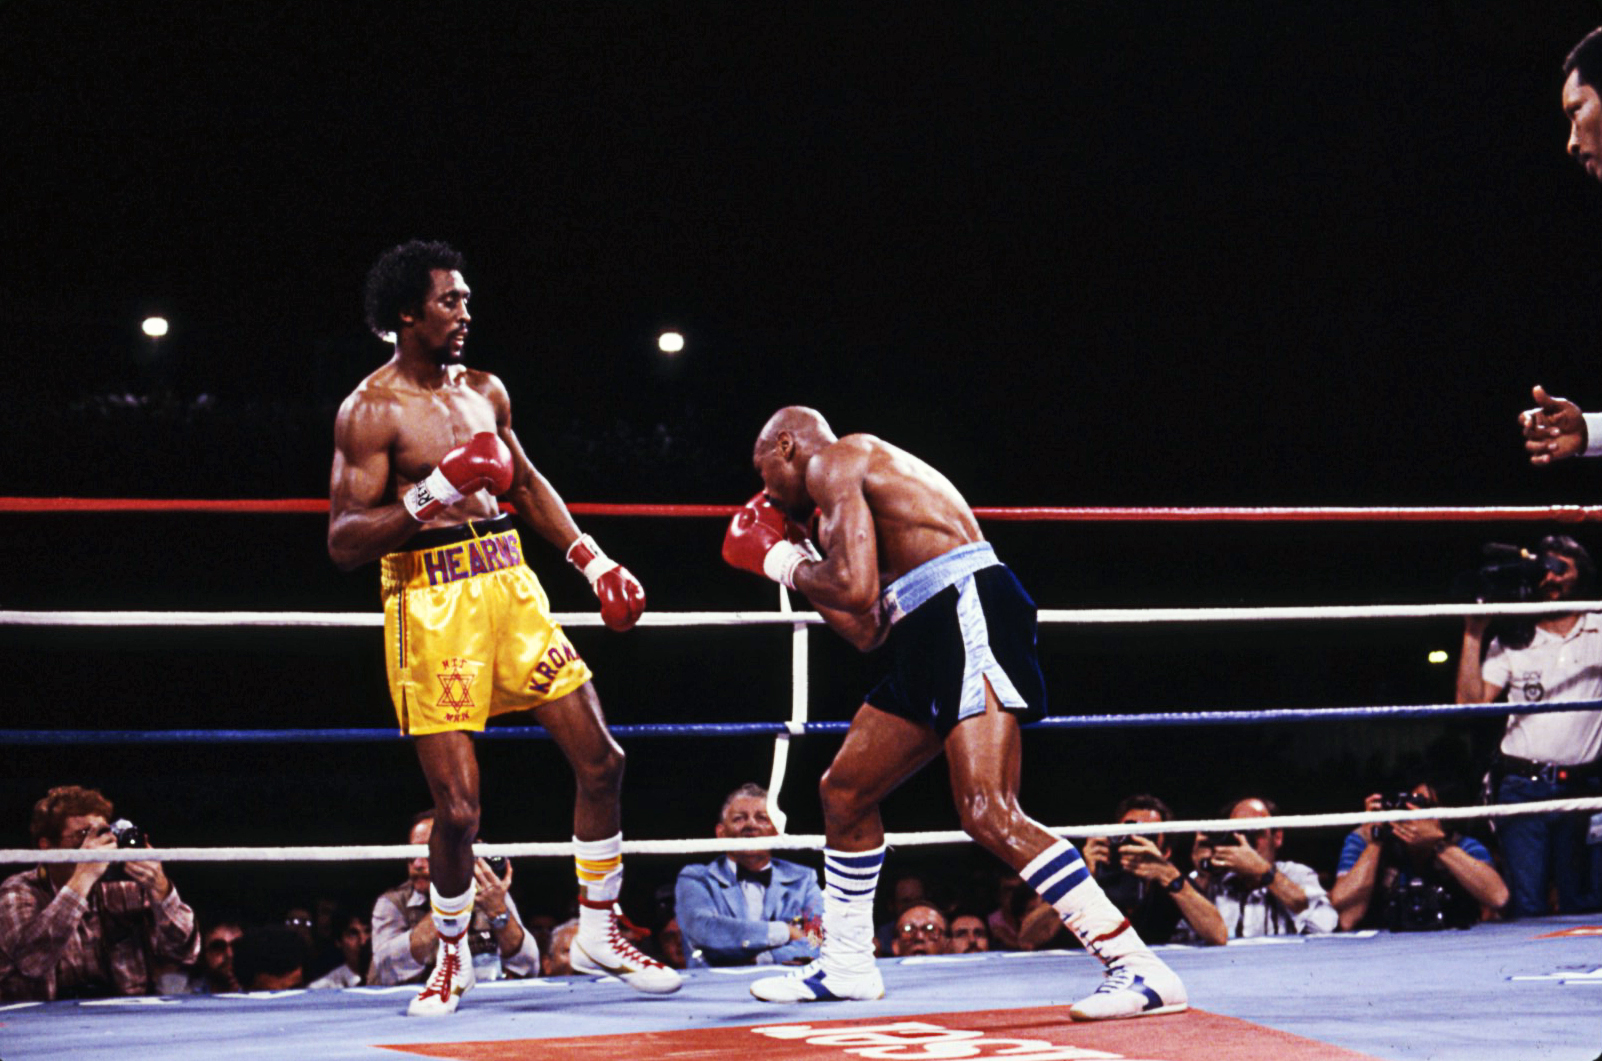 Hagler_v_Hearns_6.jpg